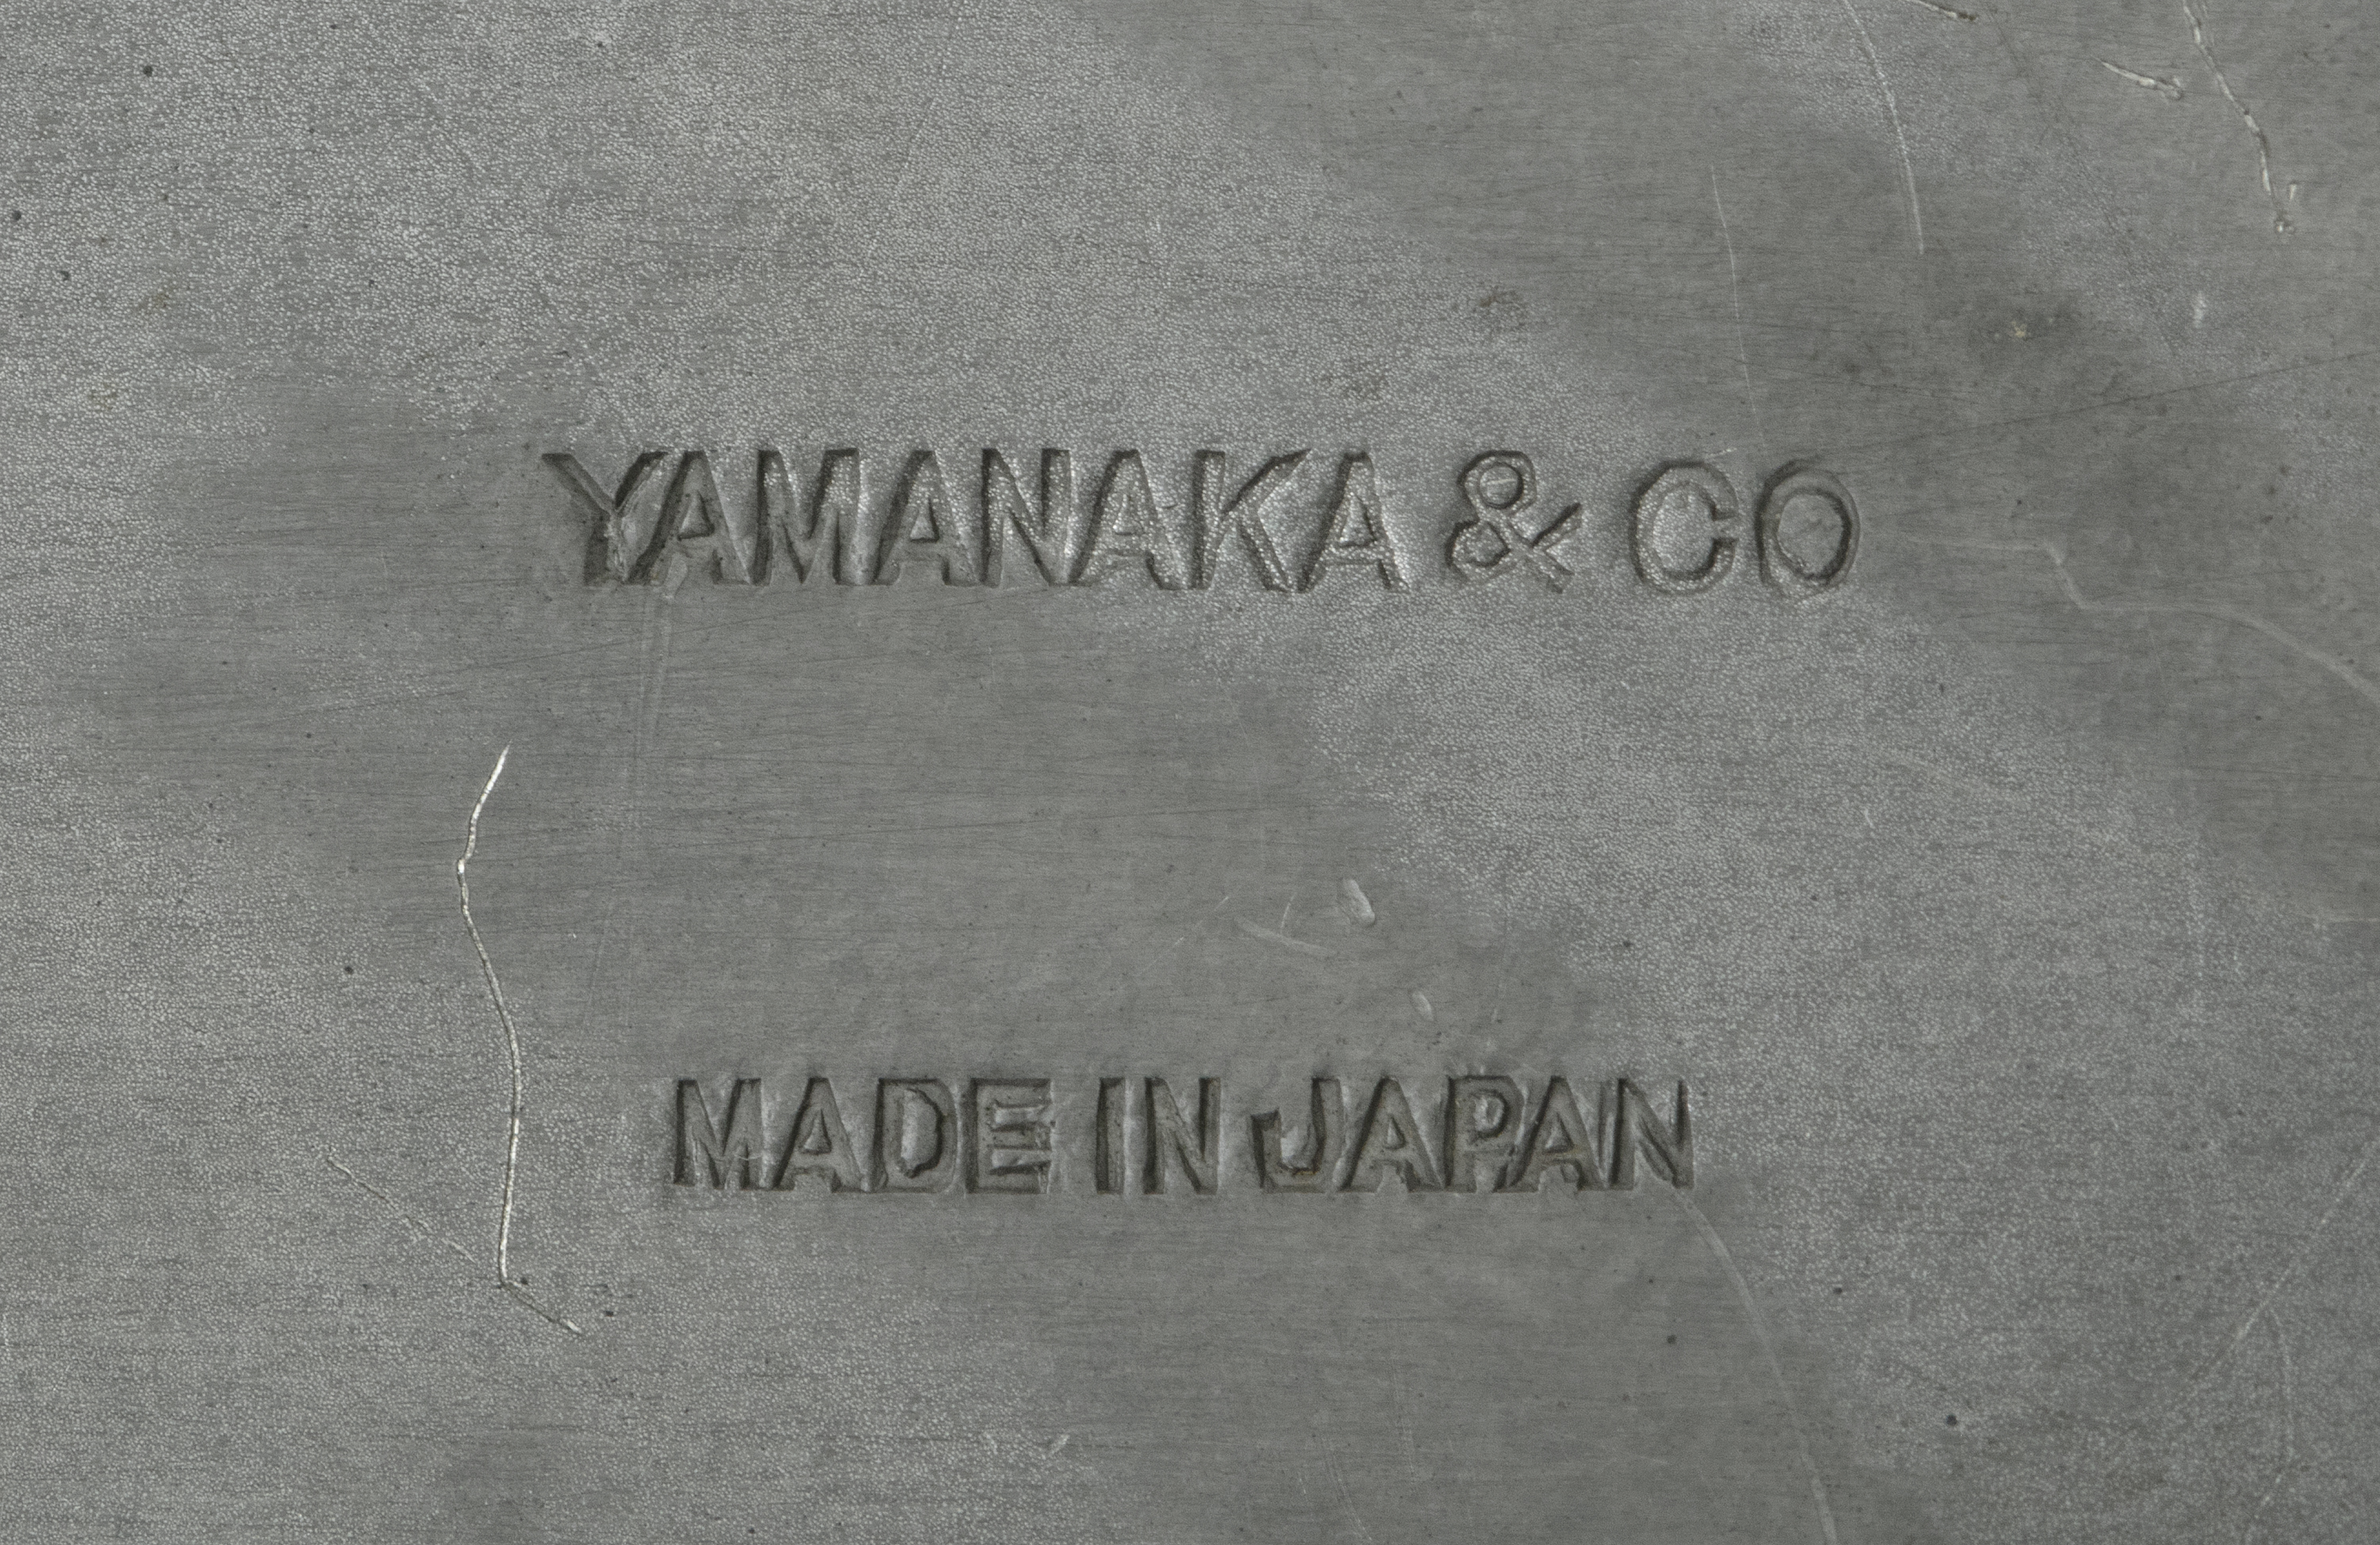 A PARCEL LACQUERED PEWTER LIDDED BOX SET WITH A JADE PIECE BY YAMANAKA & CO The box made in Japan, - Image 8 of 15